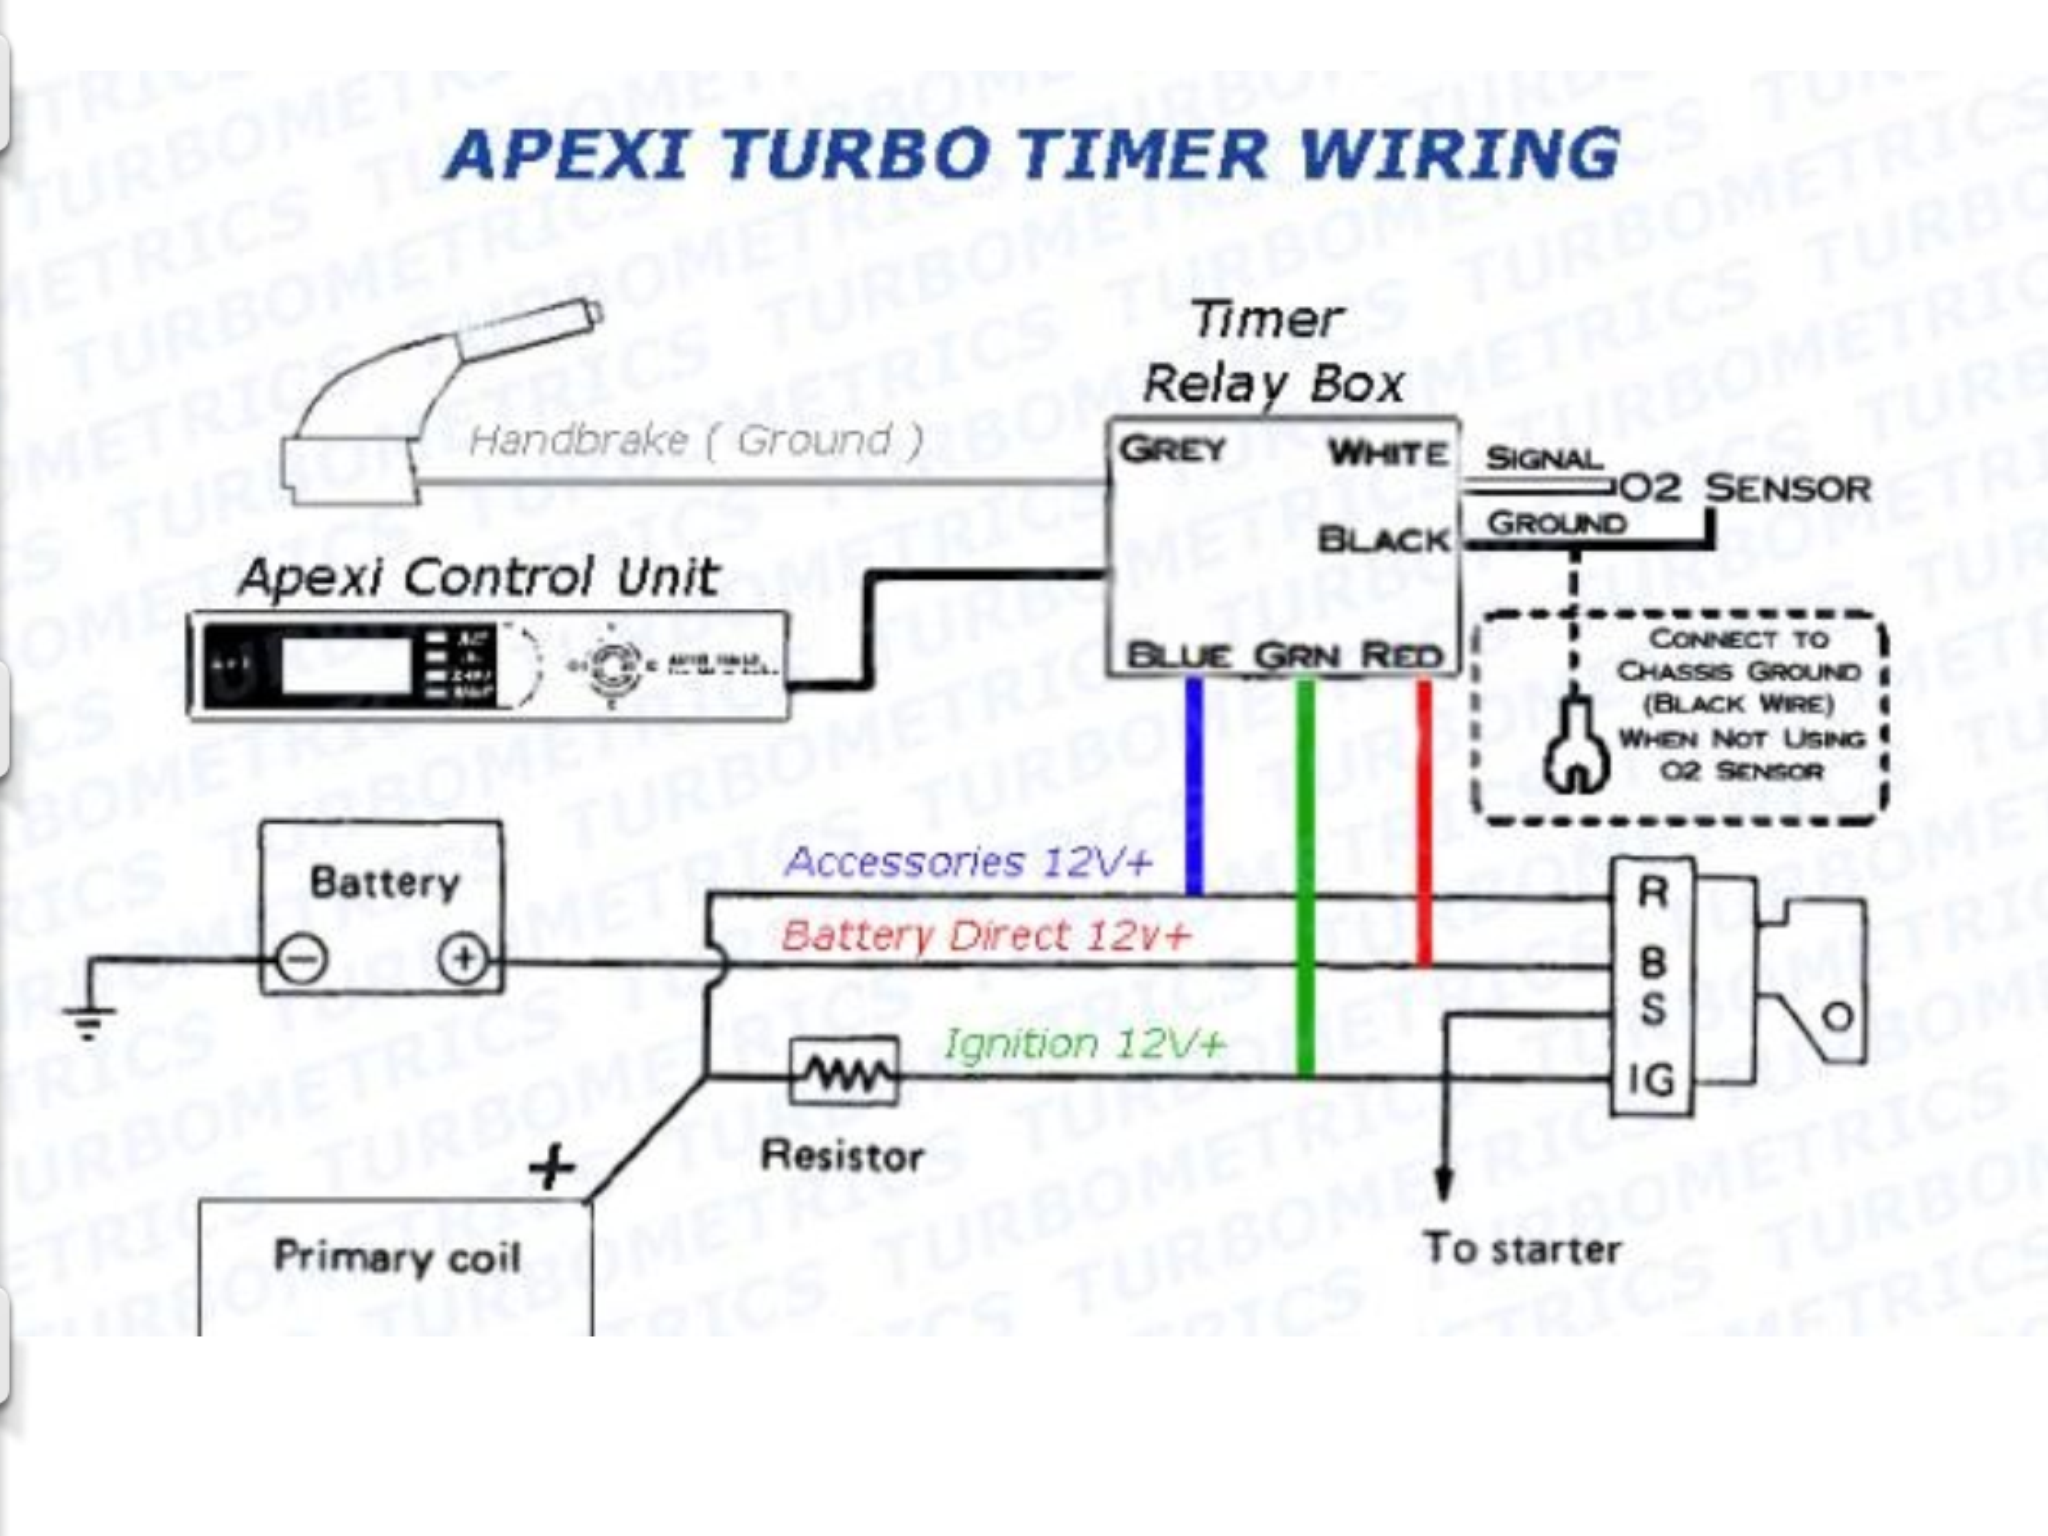 turbo timer wiring diagram reddy g 2 schematics wiring diagrams u2022 rh seniorlivinguniversity co Scion tC Alternator Wiring-Diagram 2005 Scion tC AC Wiring Diagram